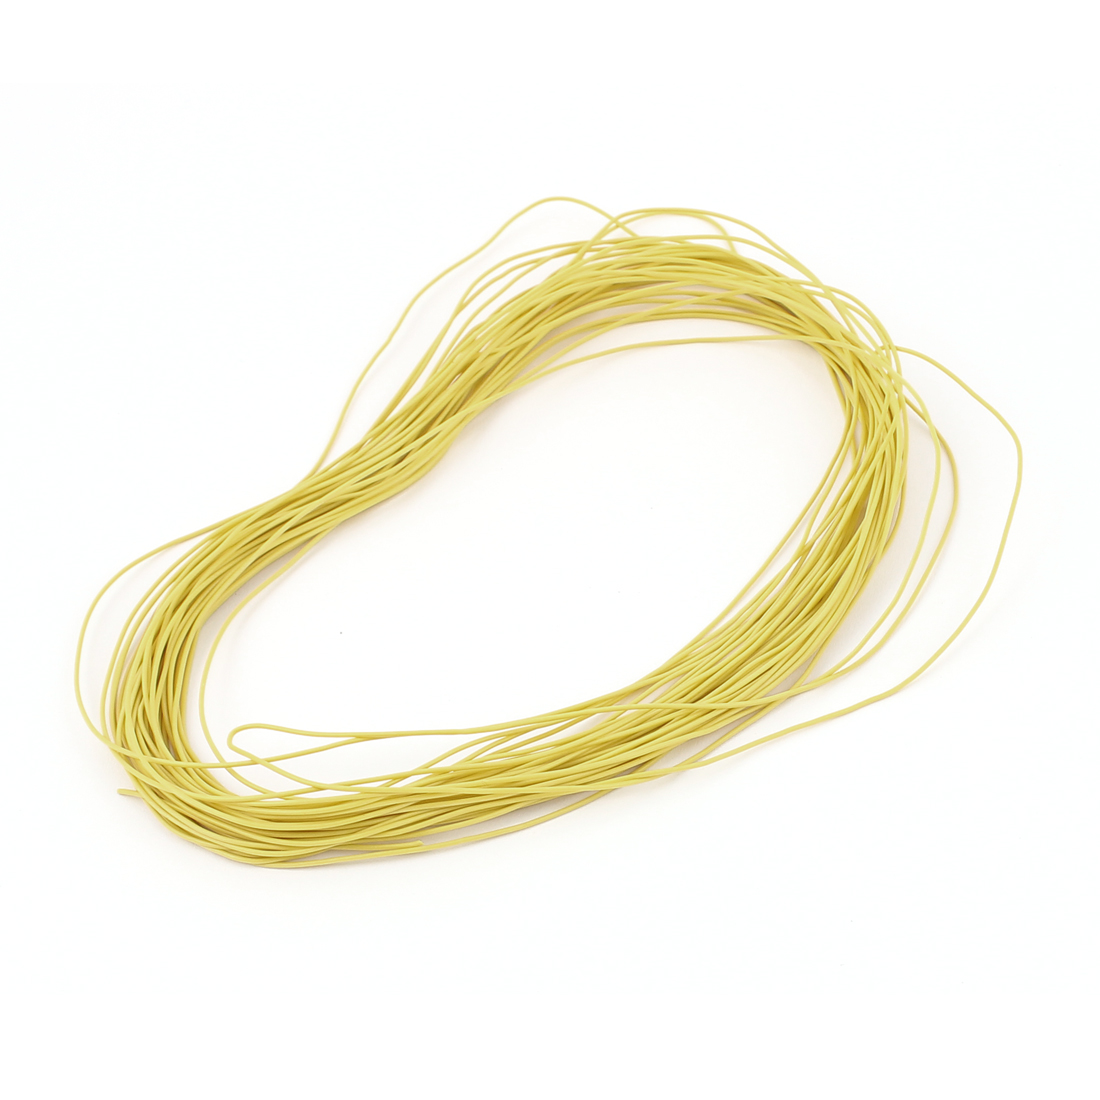 15M 30AWG Electric Copper Core Flexible Silicone Wire Cable Yellow